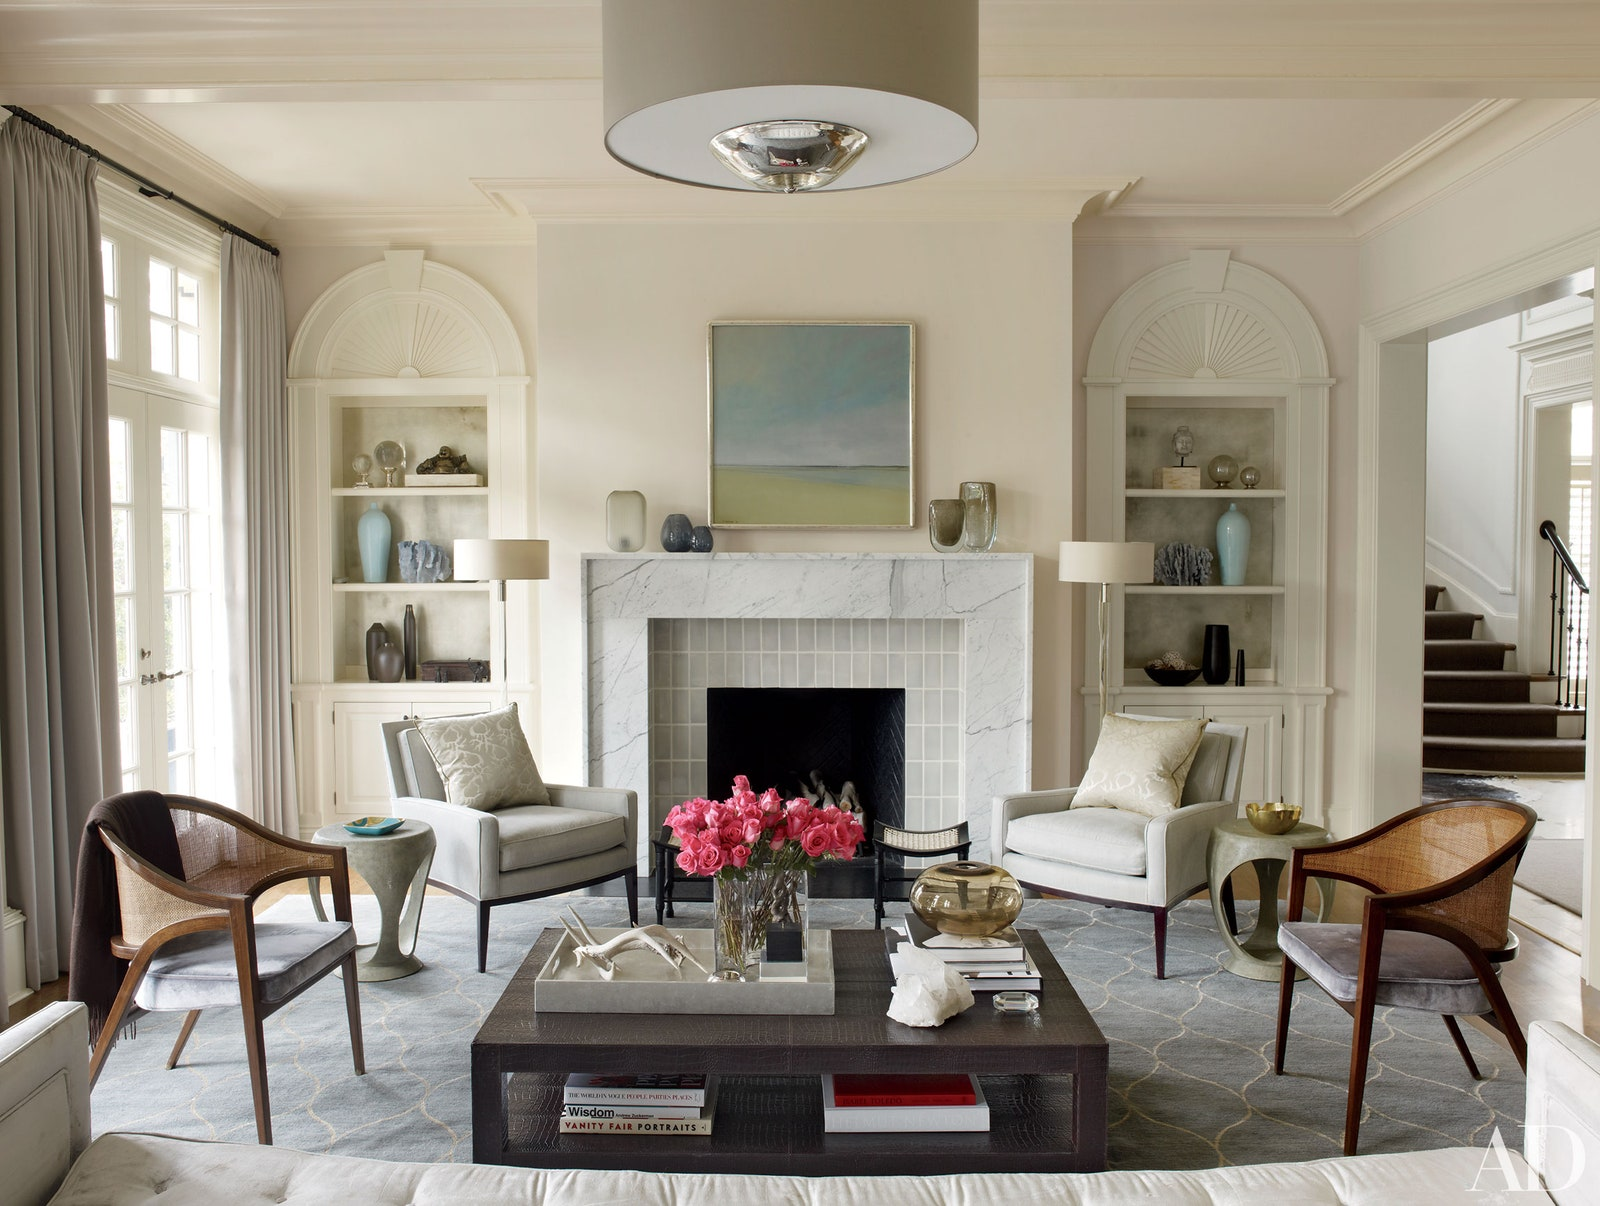 NYC Interior Designers, A List Of The Top 10  nyc interior designers NYC Interior Designers, A List Of The Top 10 groves